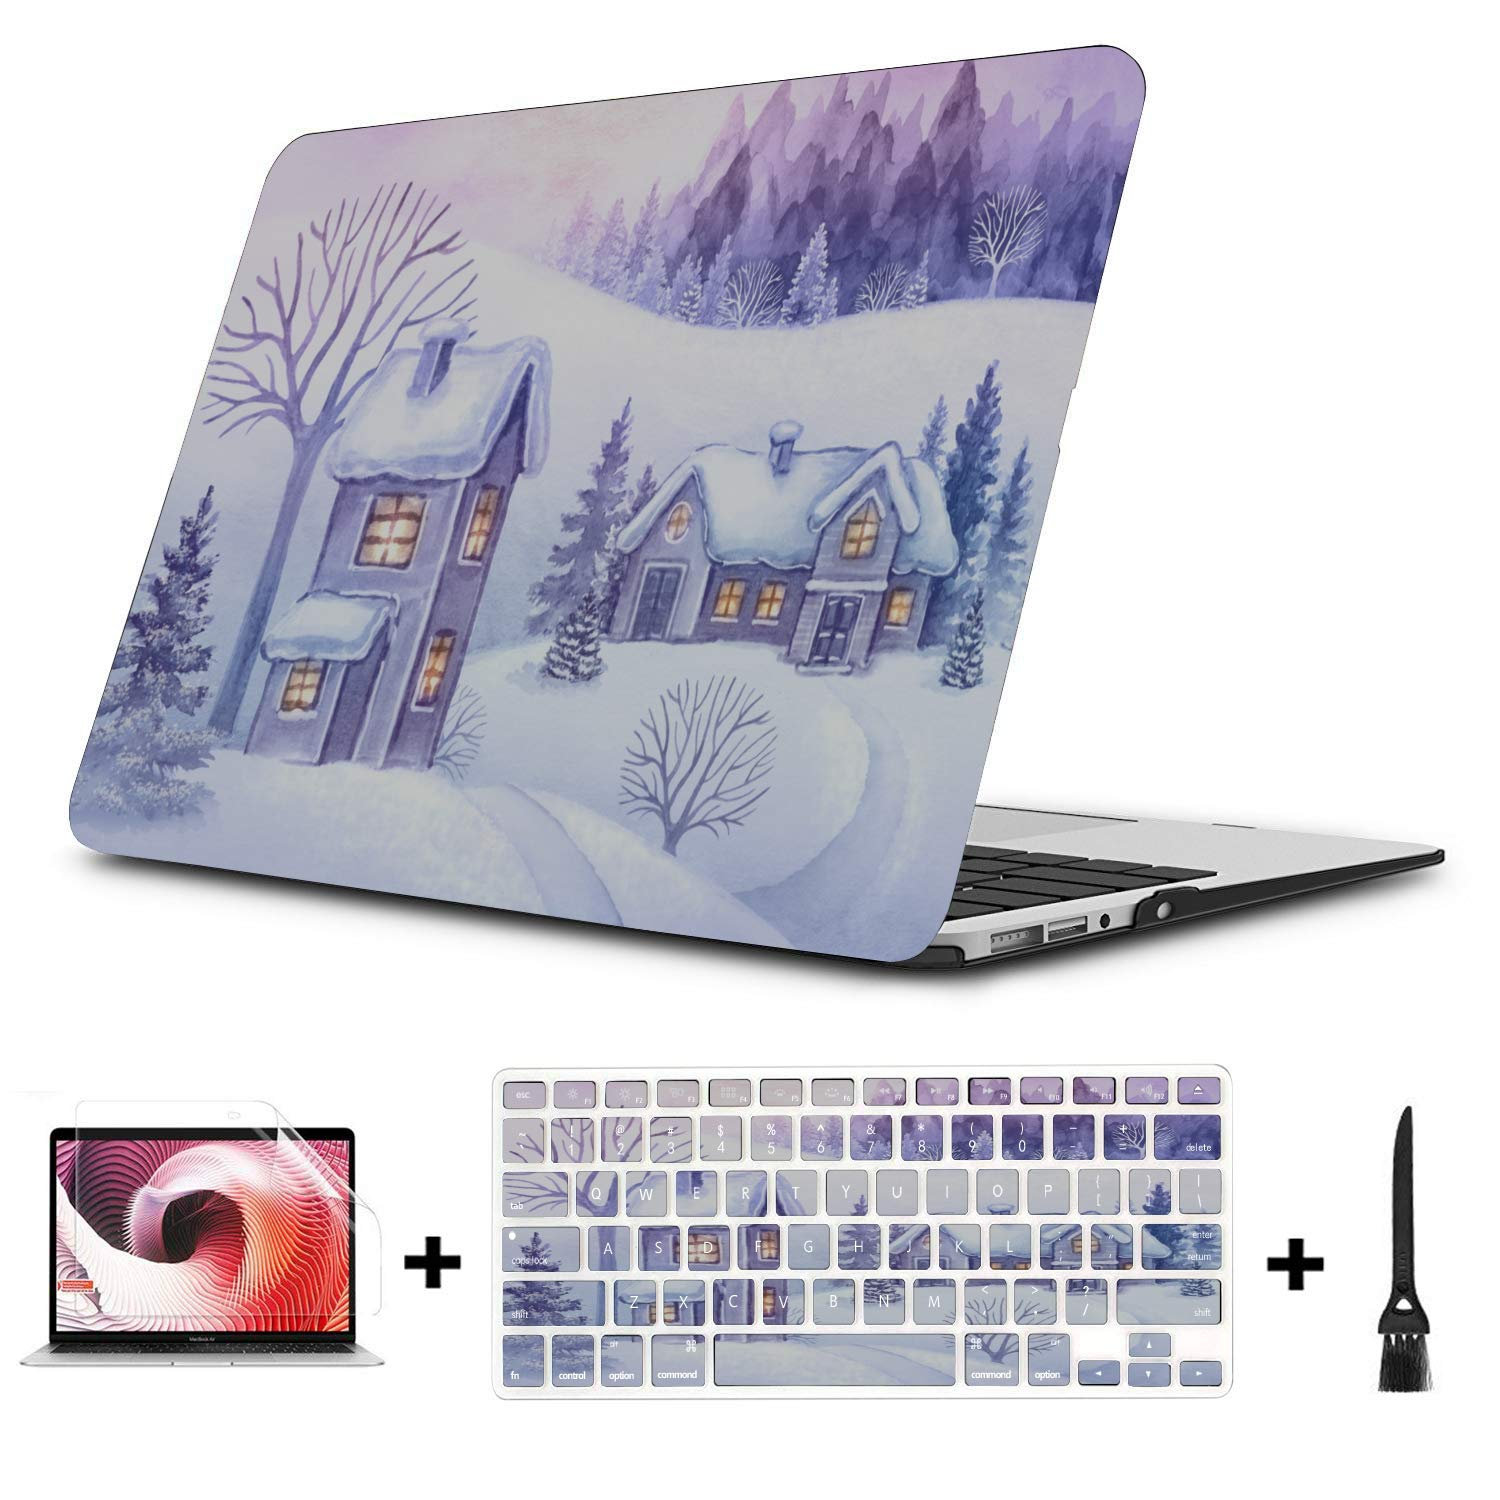 MacBook Pro 13 Cover Snow Forest Night Countryside House Plastic Hard Shell Compatible Mac Air 11 Pro 13 15 MacBook Air A1466 Case Protection for MacBook 2016-2019 Version